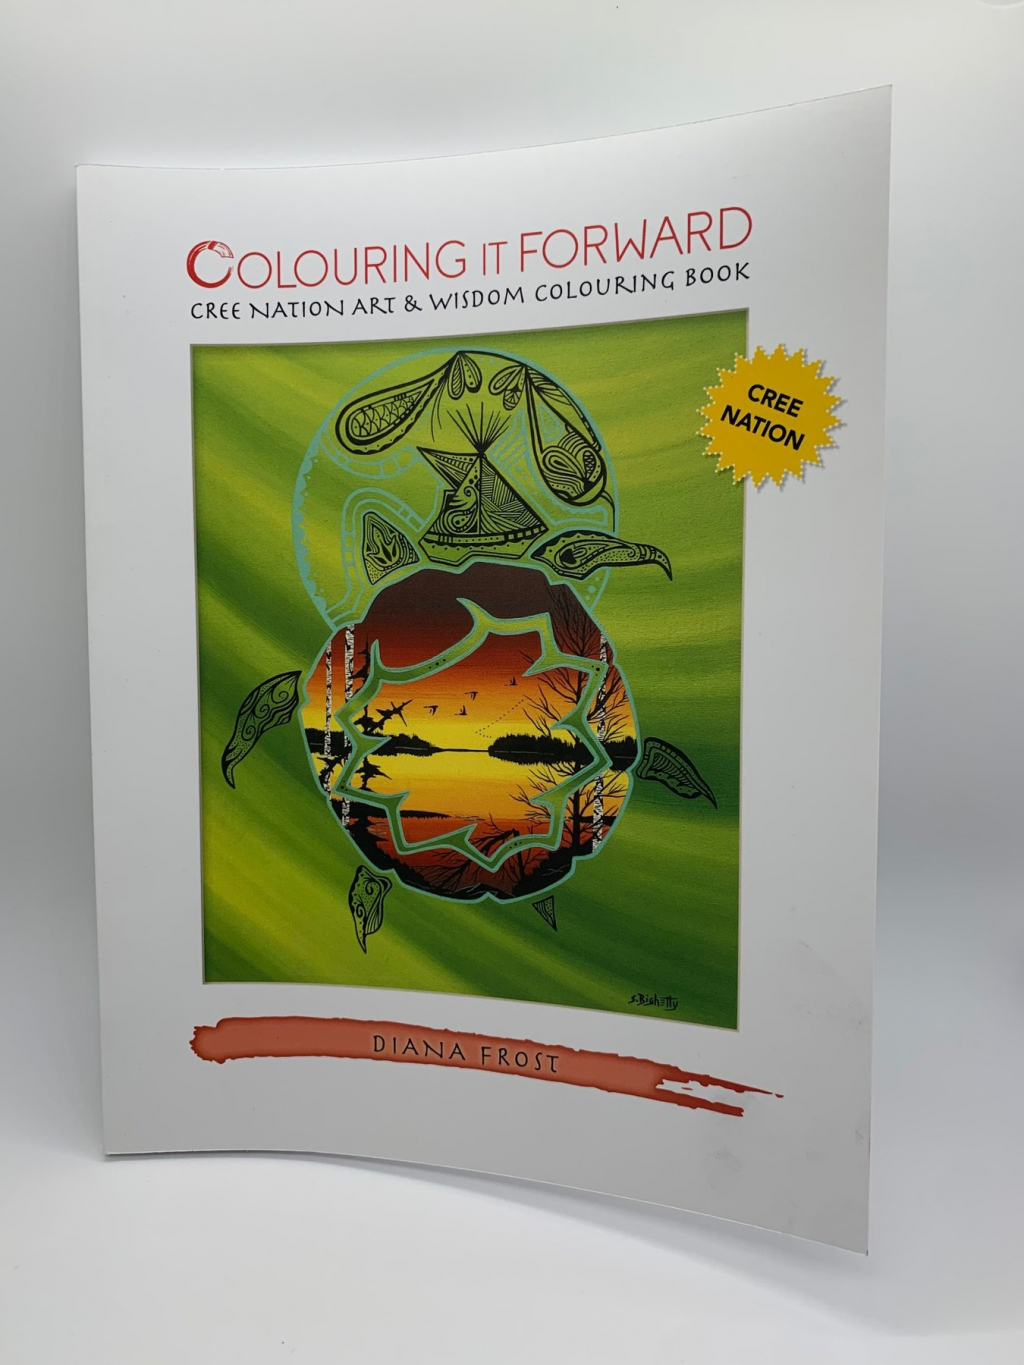 Thumbnail of: Colouring it Froward - Discover Cree Nation Art and Wisdom - Colouring Book